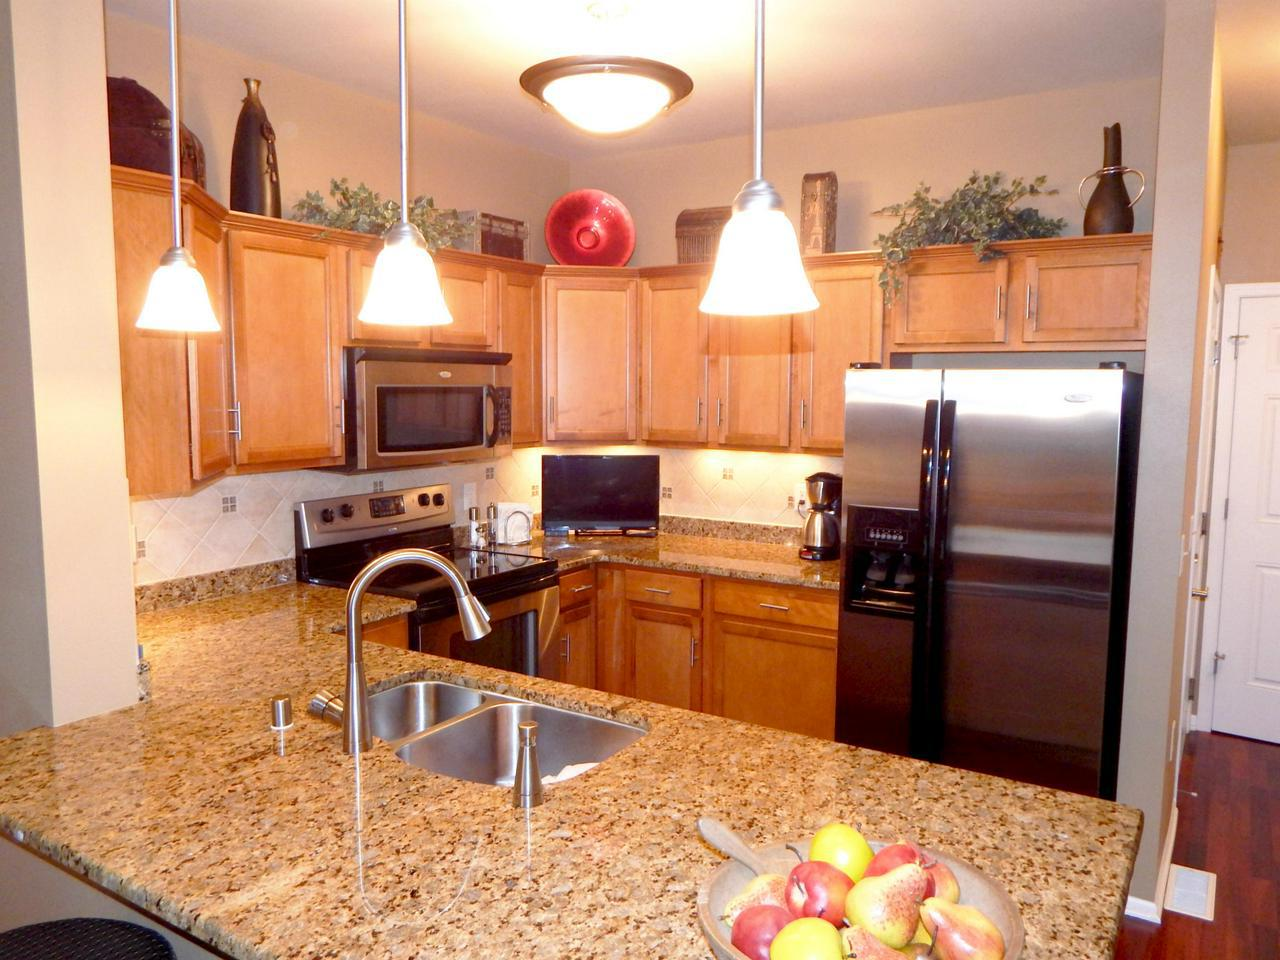 Simply one of the Best New Port Vista has to offer.One of the best locations, floor plans and highest level of upgrades.Very open and bright w/great views.Professional decorated with quality and style.Kitchen w/custom backslash,granite counters,cherry floors,stainless appliances,custom lighting.Great room and dining room with upgraded carpet & custom lighting. 3 full baths all with ceramic tile floors.Custom lighting through out.Gas fireplace,marble entrance,LL great room w/wet bar,full bath, 8ft ceilings and walk out 2nd patio. Outstanding club house w/work out room, hot tub and pool.